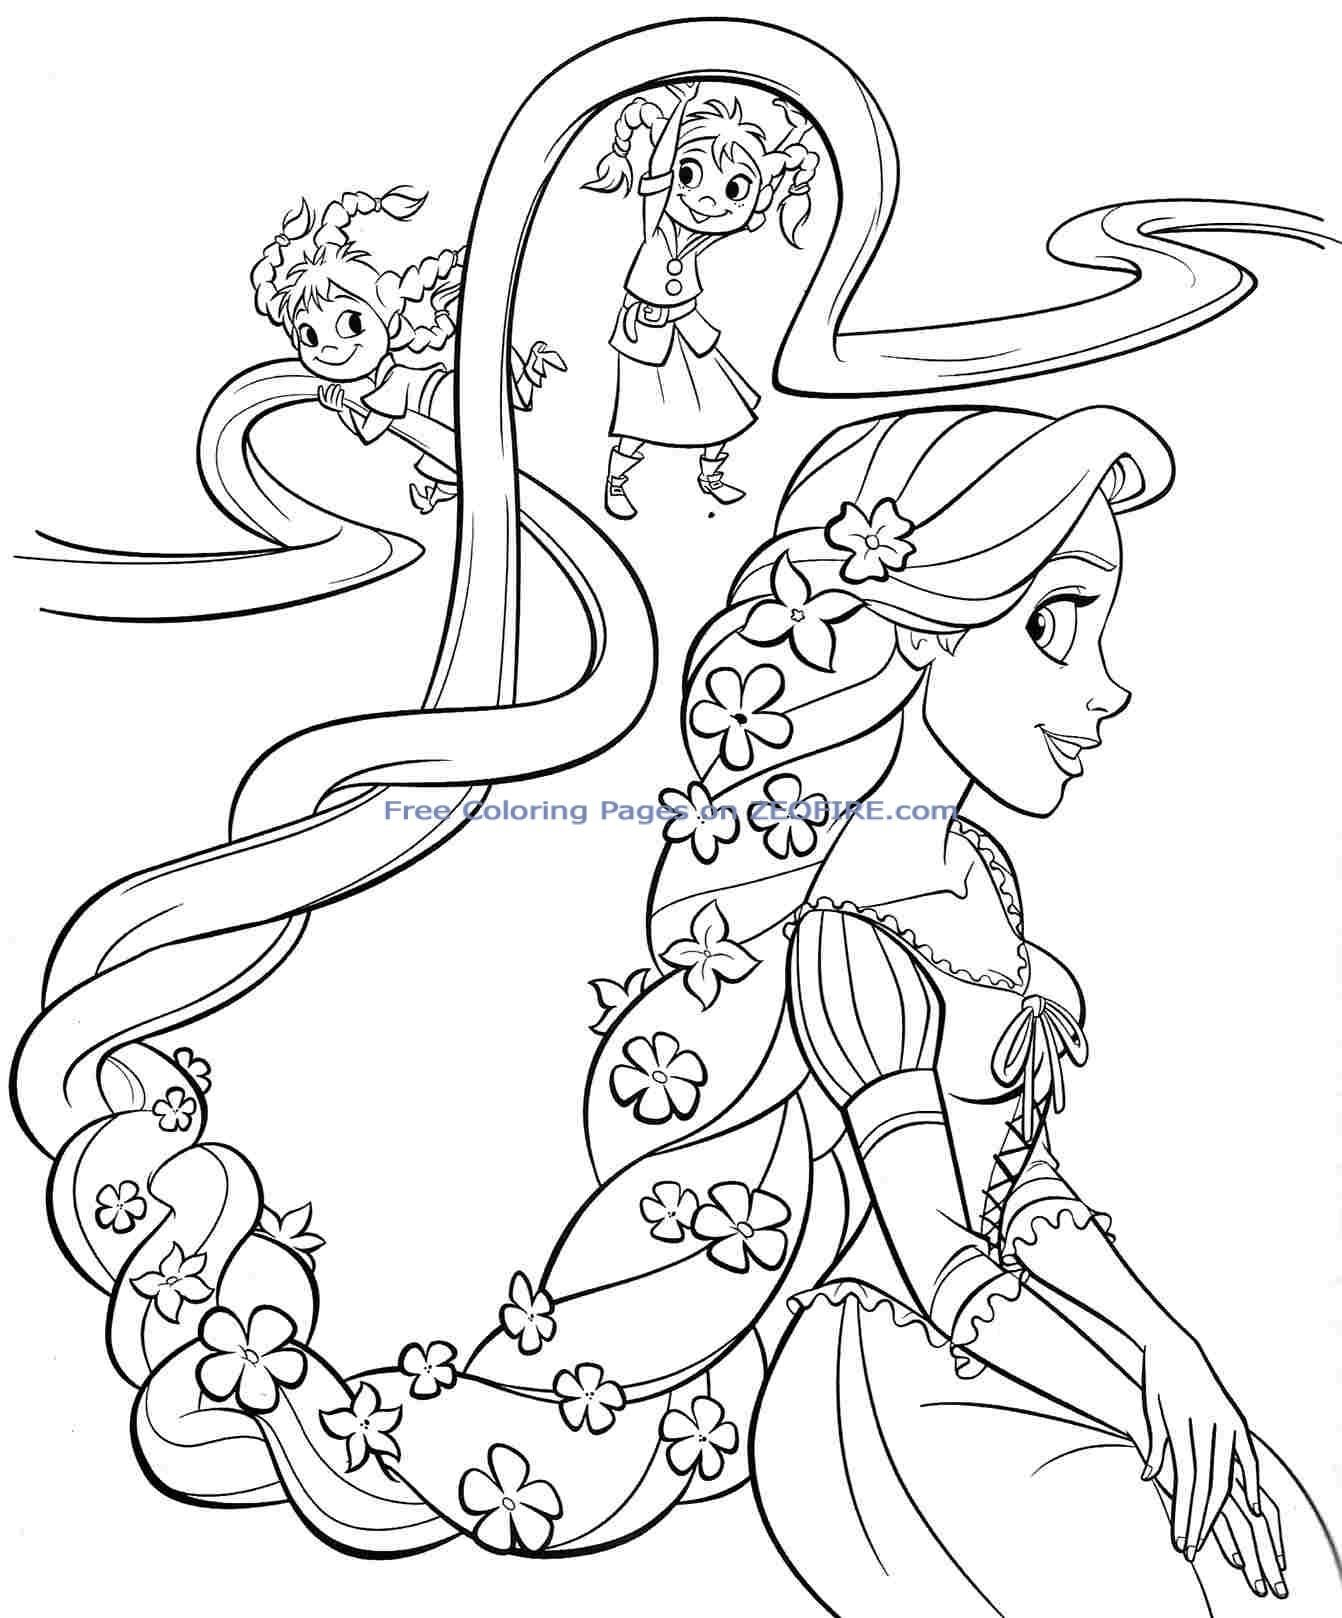 amazing princess coloring pages printables 88 - Princess Coloring Pages Printable